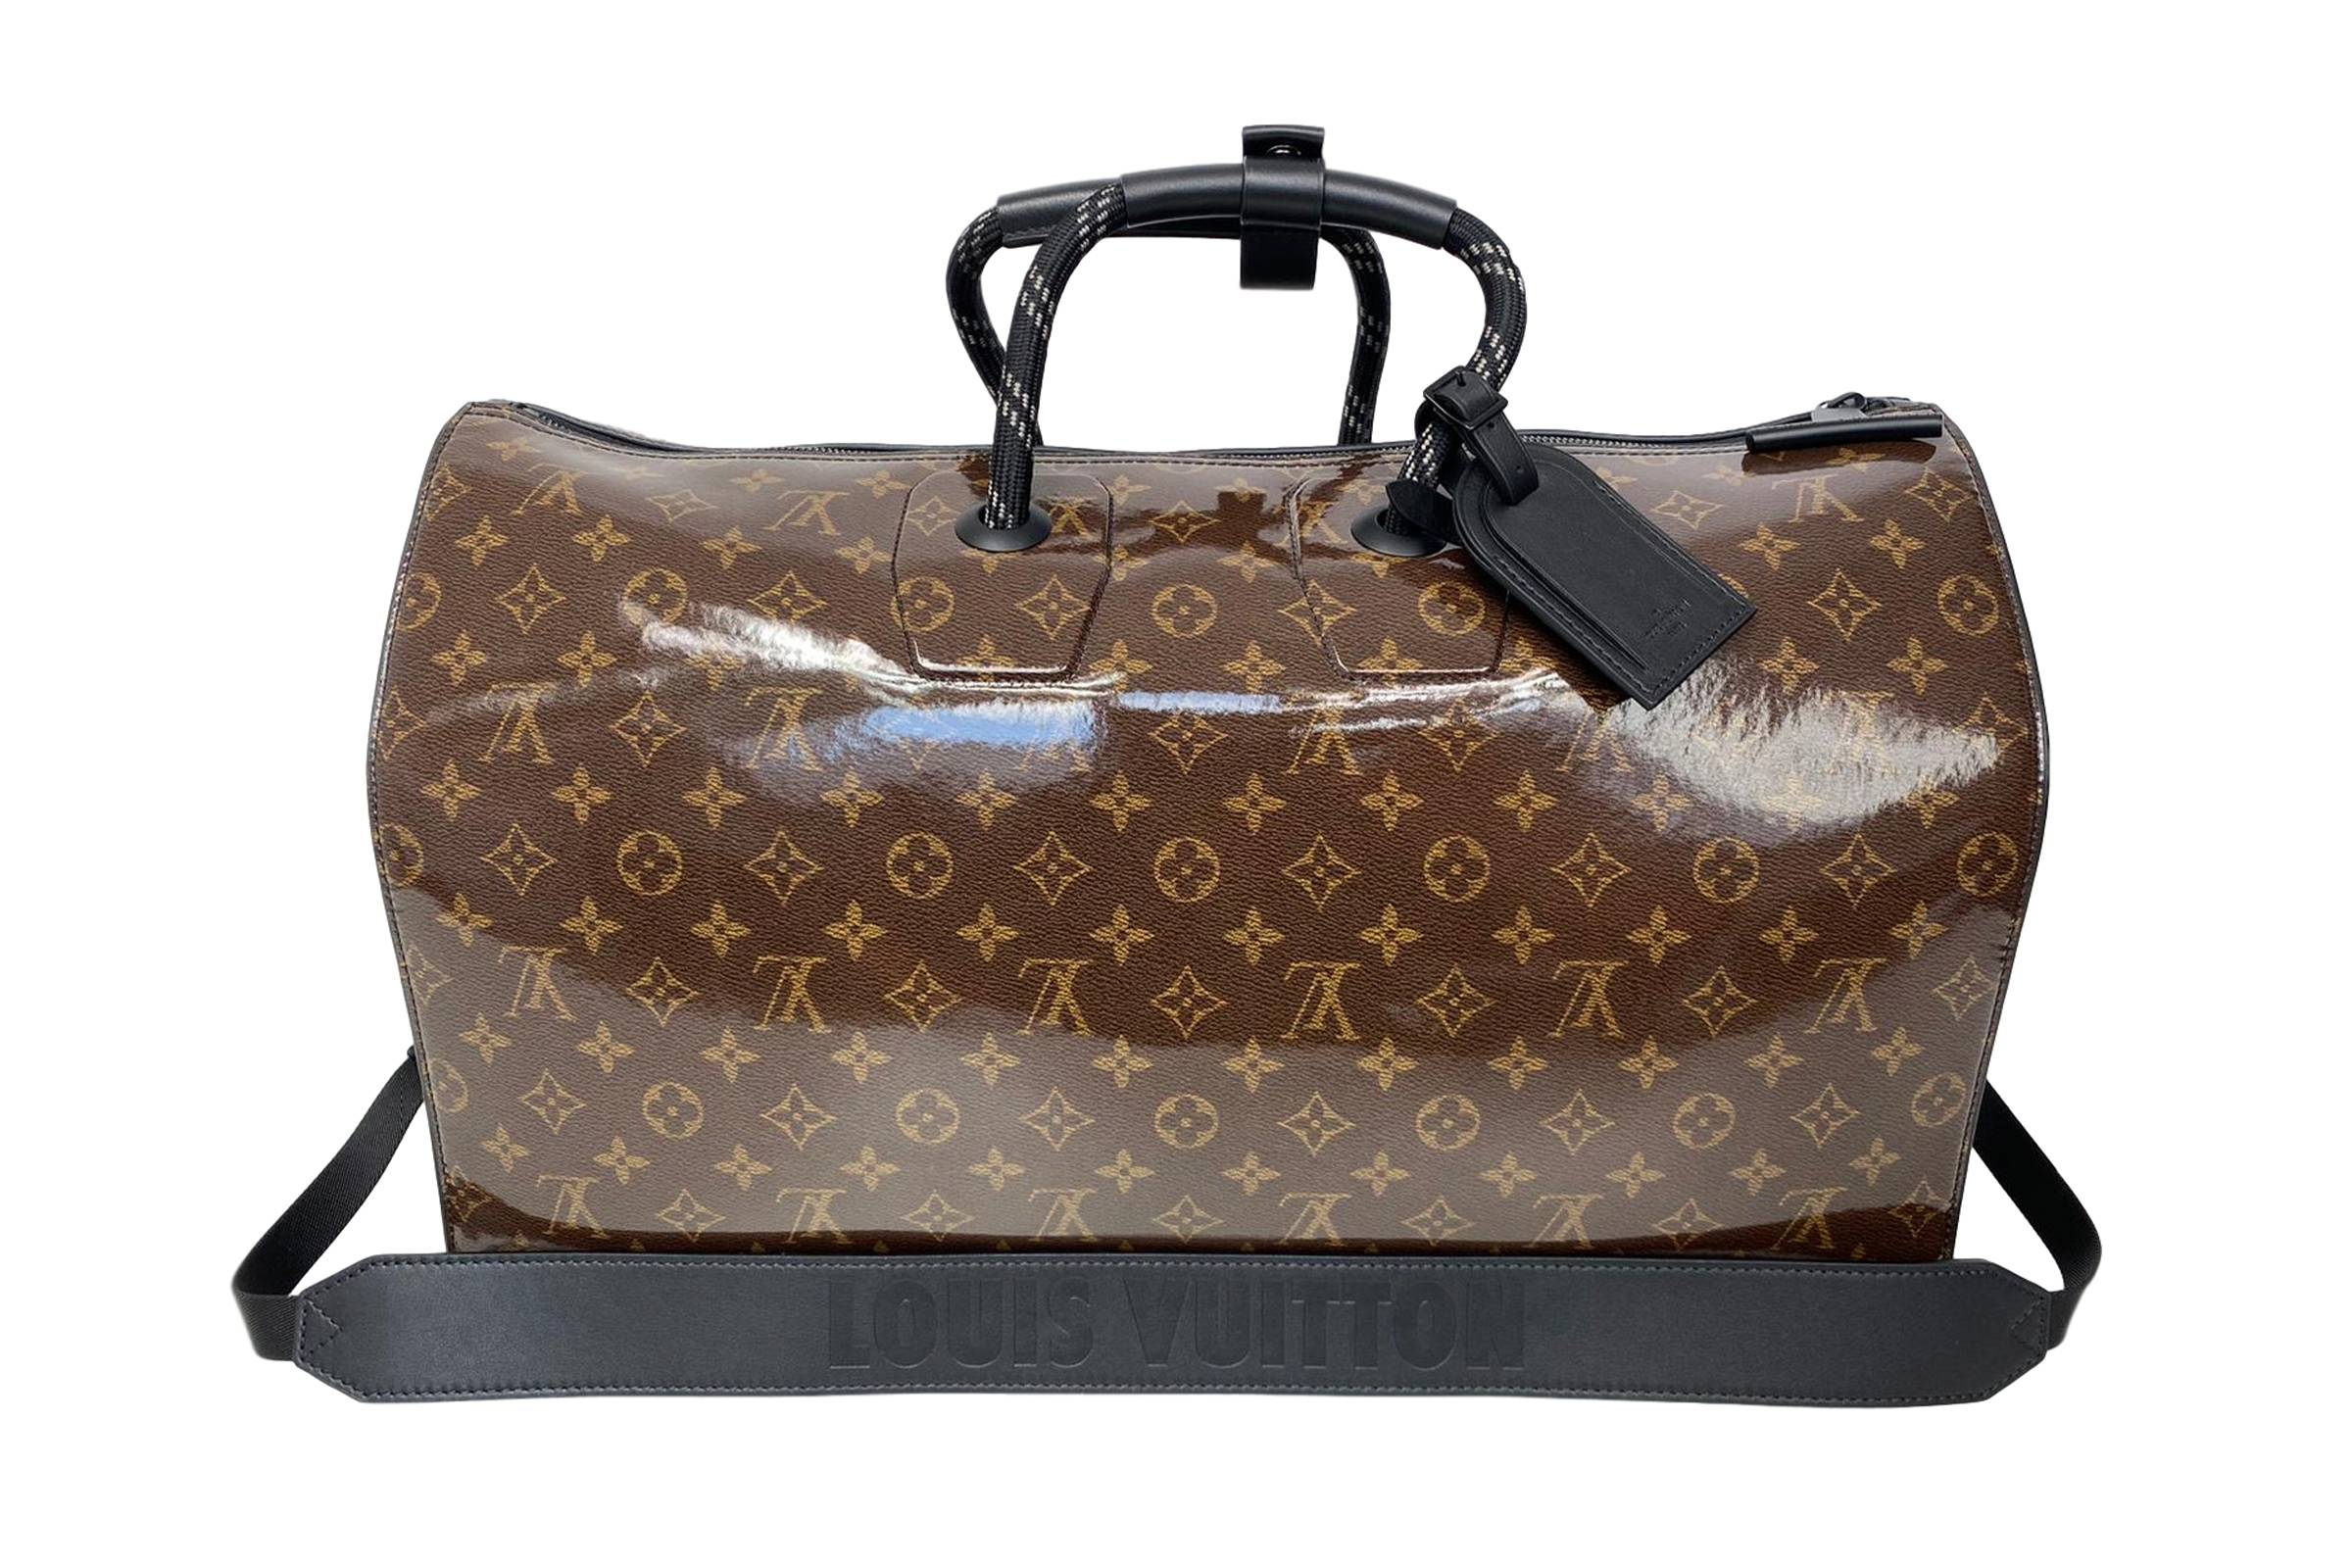 Louis Vuitton Spring/Summer 2018 Monogram Glaze Keepall 50